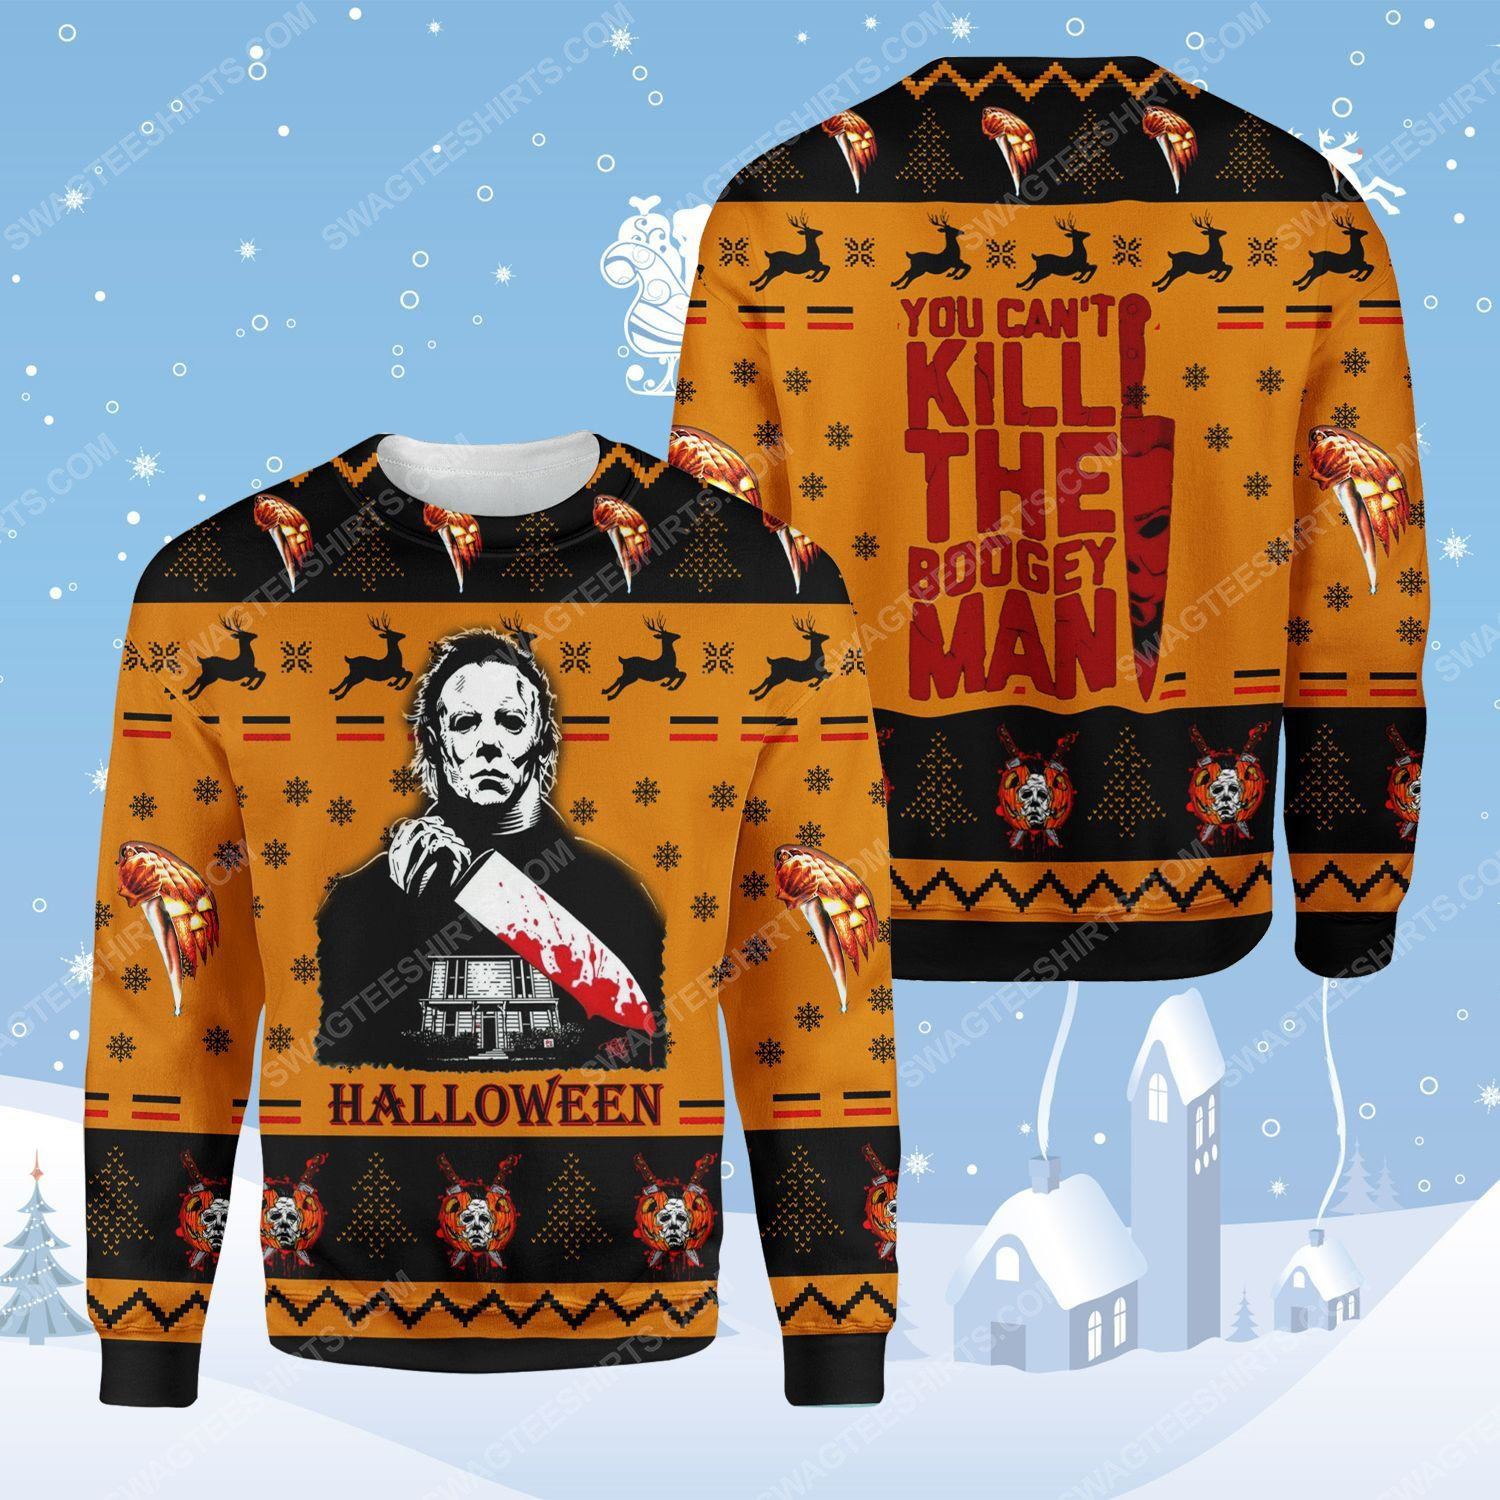 Halloween michael myers you can't kill the boogeyman ugly christmas sweater - Copy